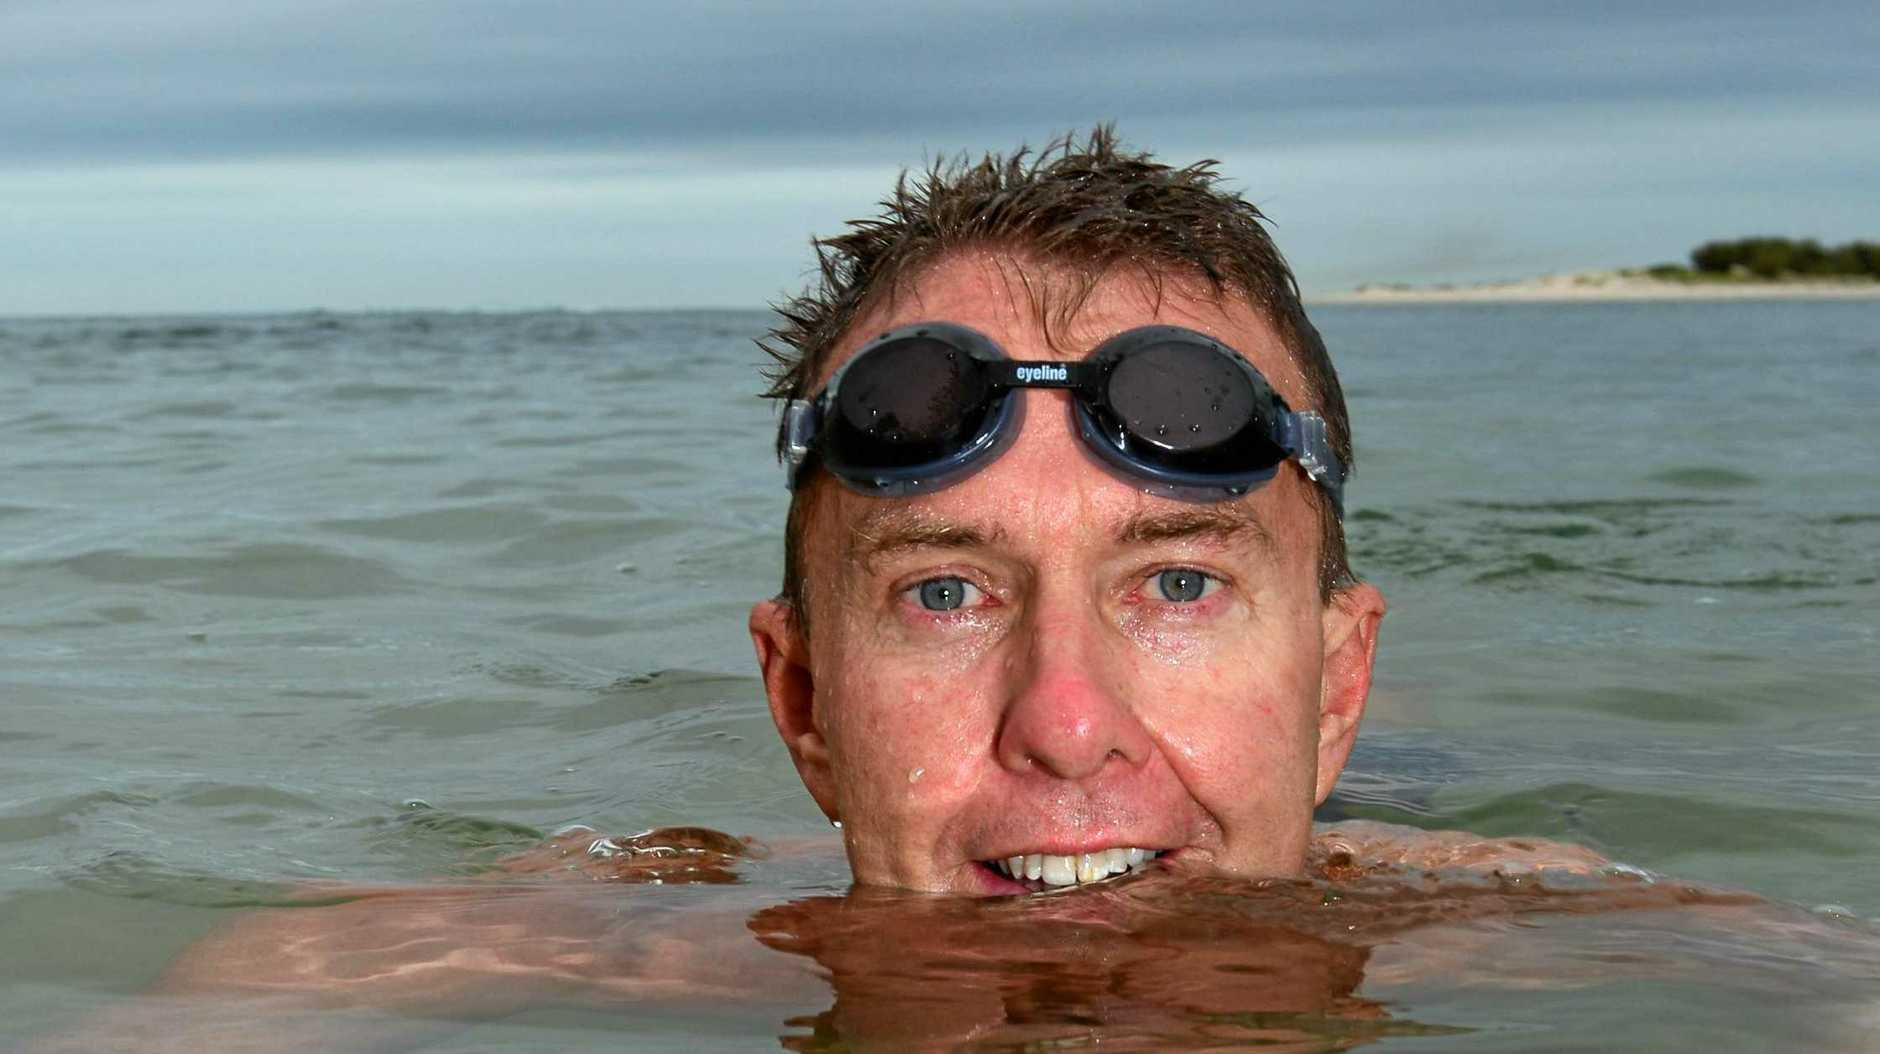 SURVIVOR: Former Caloundra man Peter Schultz, who swam the English Channel, was bitten by a shark in Manly on Tuesday morning.